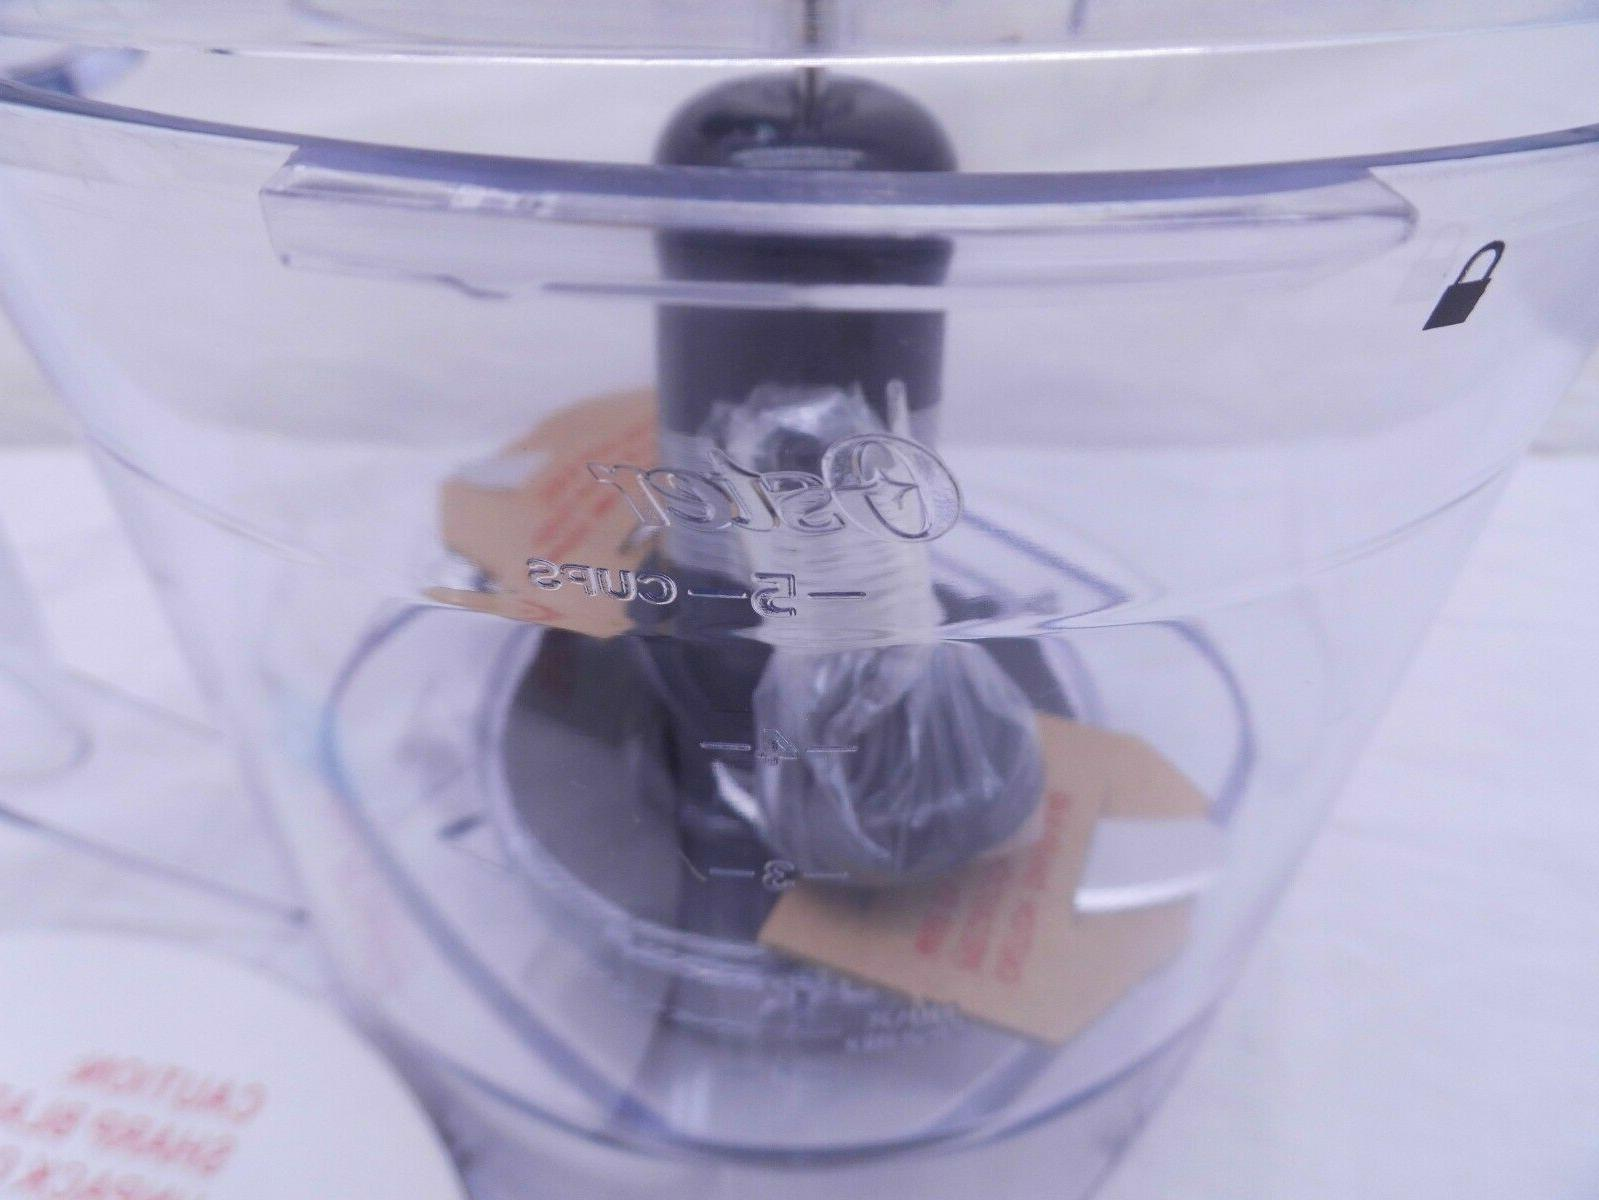 NEW Oster Food Processor 5 Cup for Pro Plus / Versa Blenders